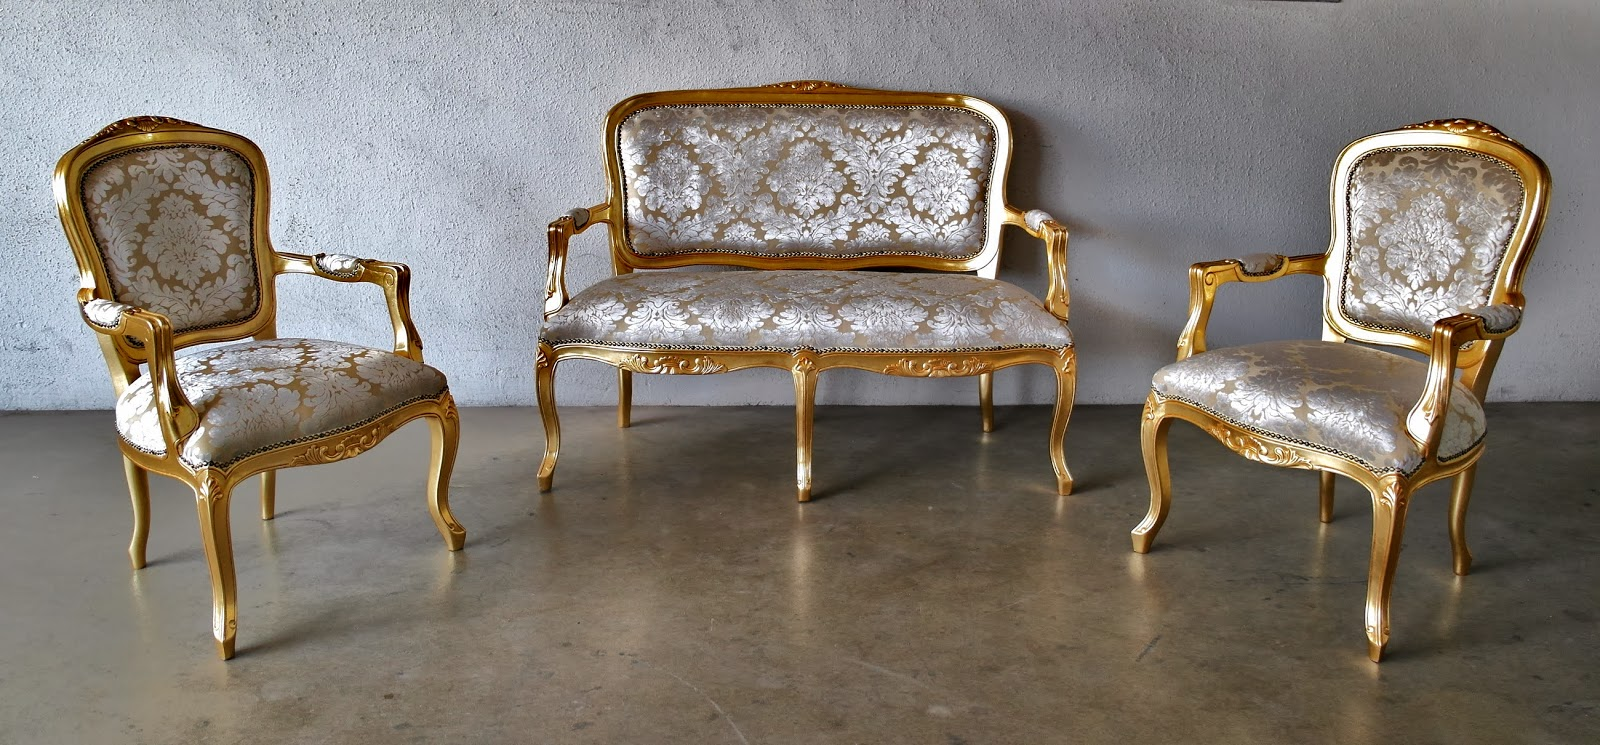 PASSIONATELY FRENCH FURNITURE   CLASSIC AND MODERN. PASSIONATELY FRENCH FURNITURE   CLASSIC AND MODERN   Second Charm